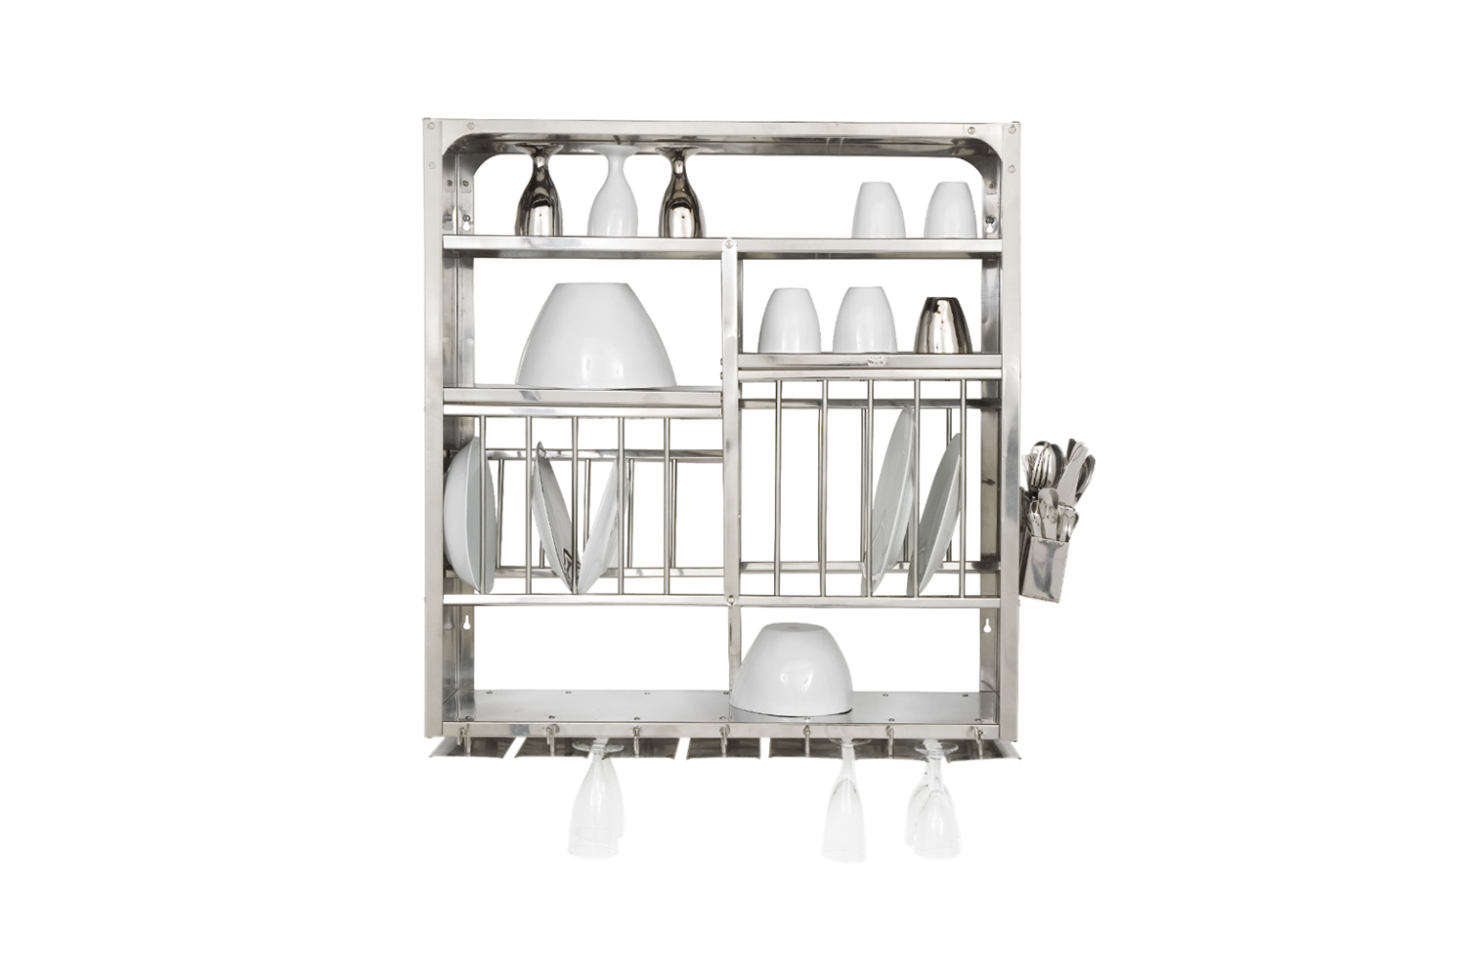 Above the sink is a stainless steel wall-mounted dish rack (the same dish racks seen at Atelier September). They sourced it from French designers Tsé and Tsé, who no longer import the Indian kitchen staple. You can find an identical Middle Plate Rack for £0 from The Plate Rack in the UK.